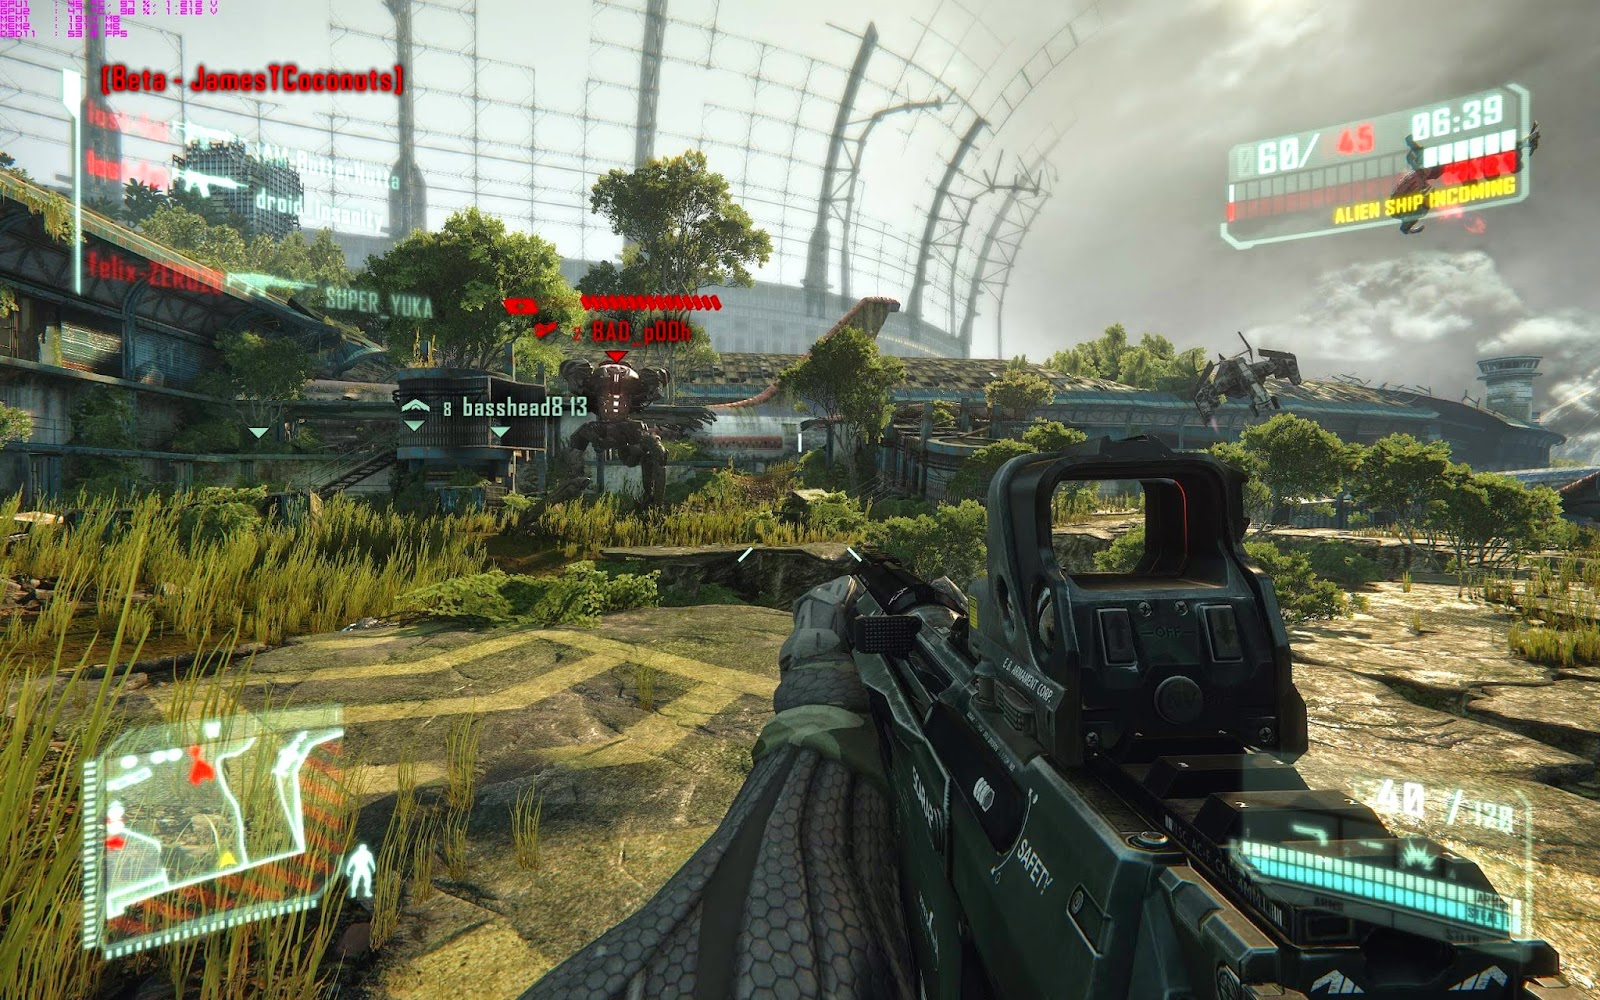 crysis 3 dx10 patch download no survey